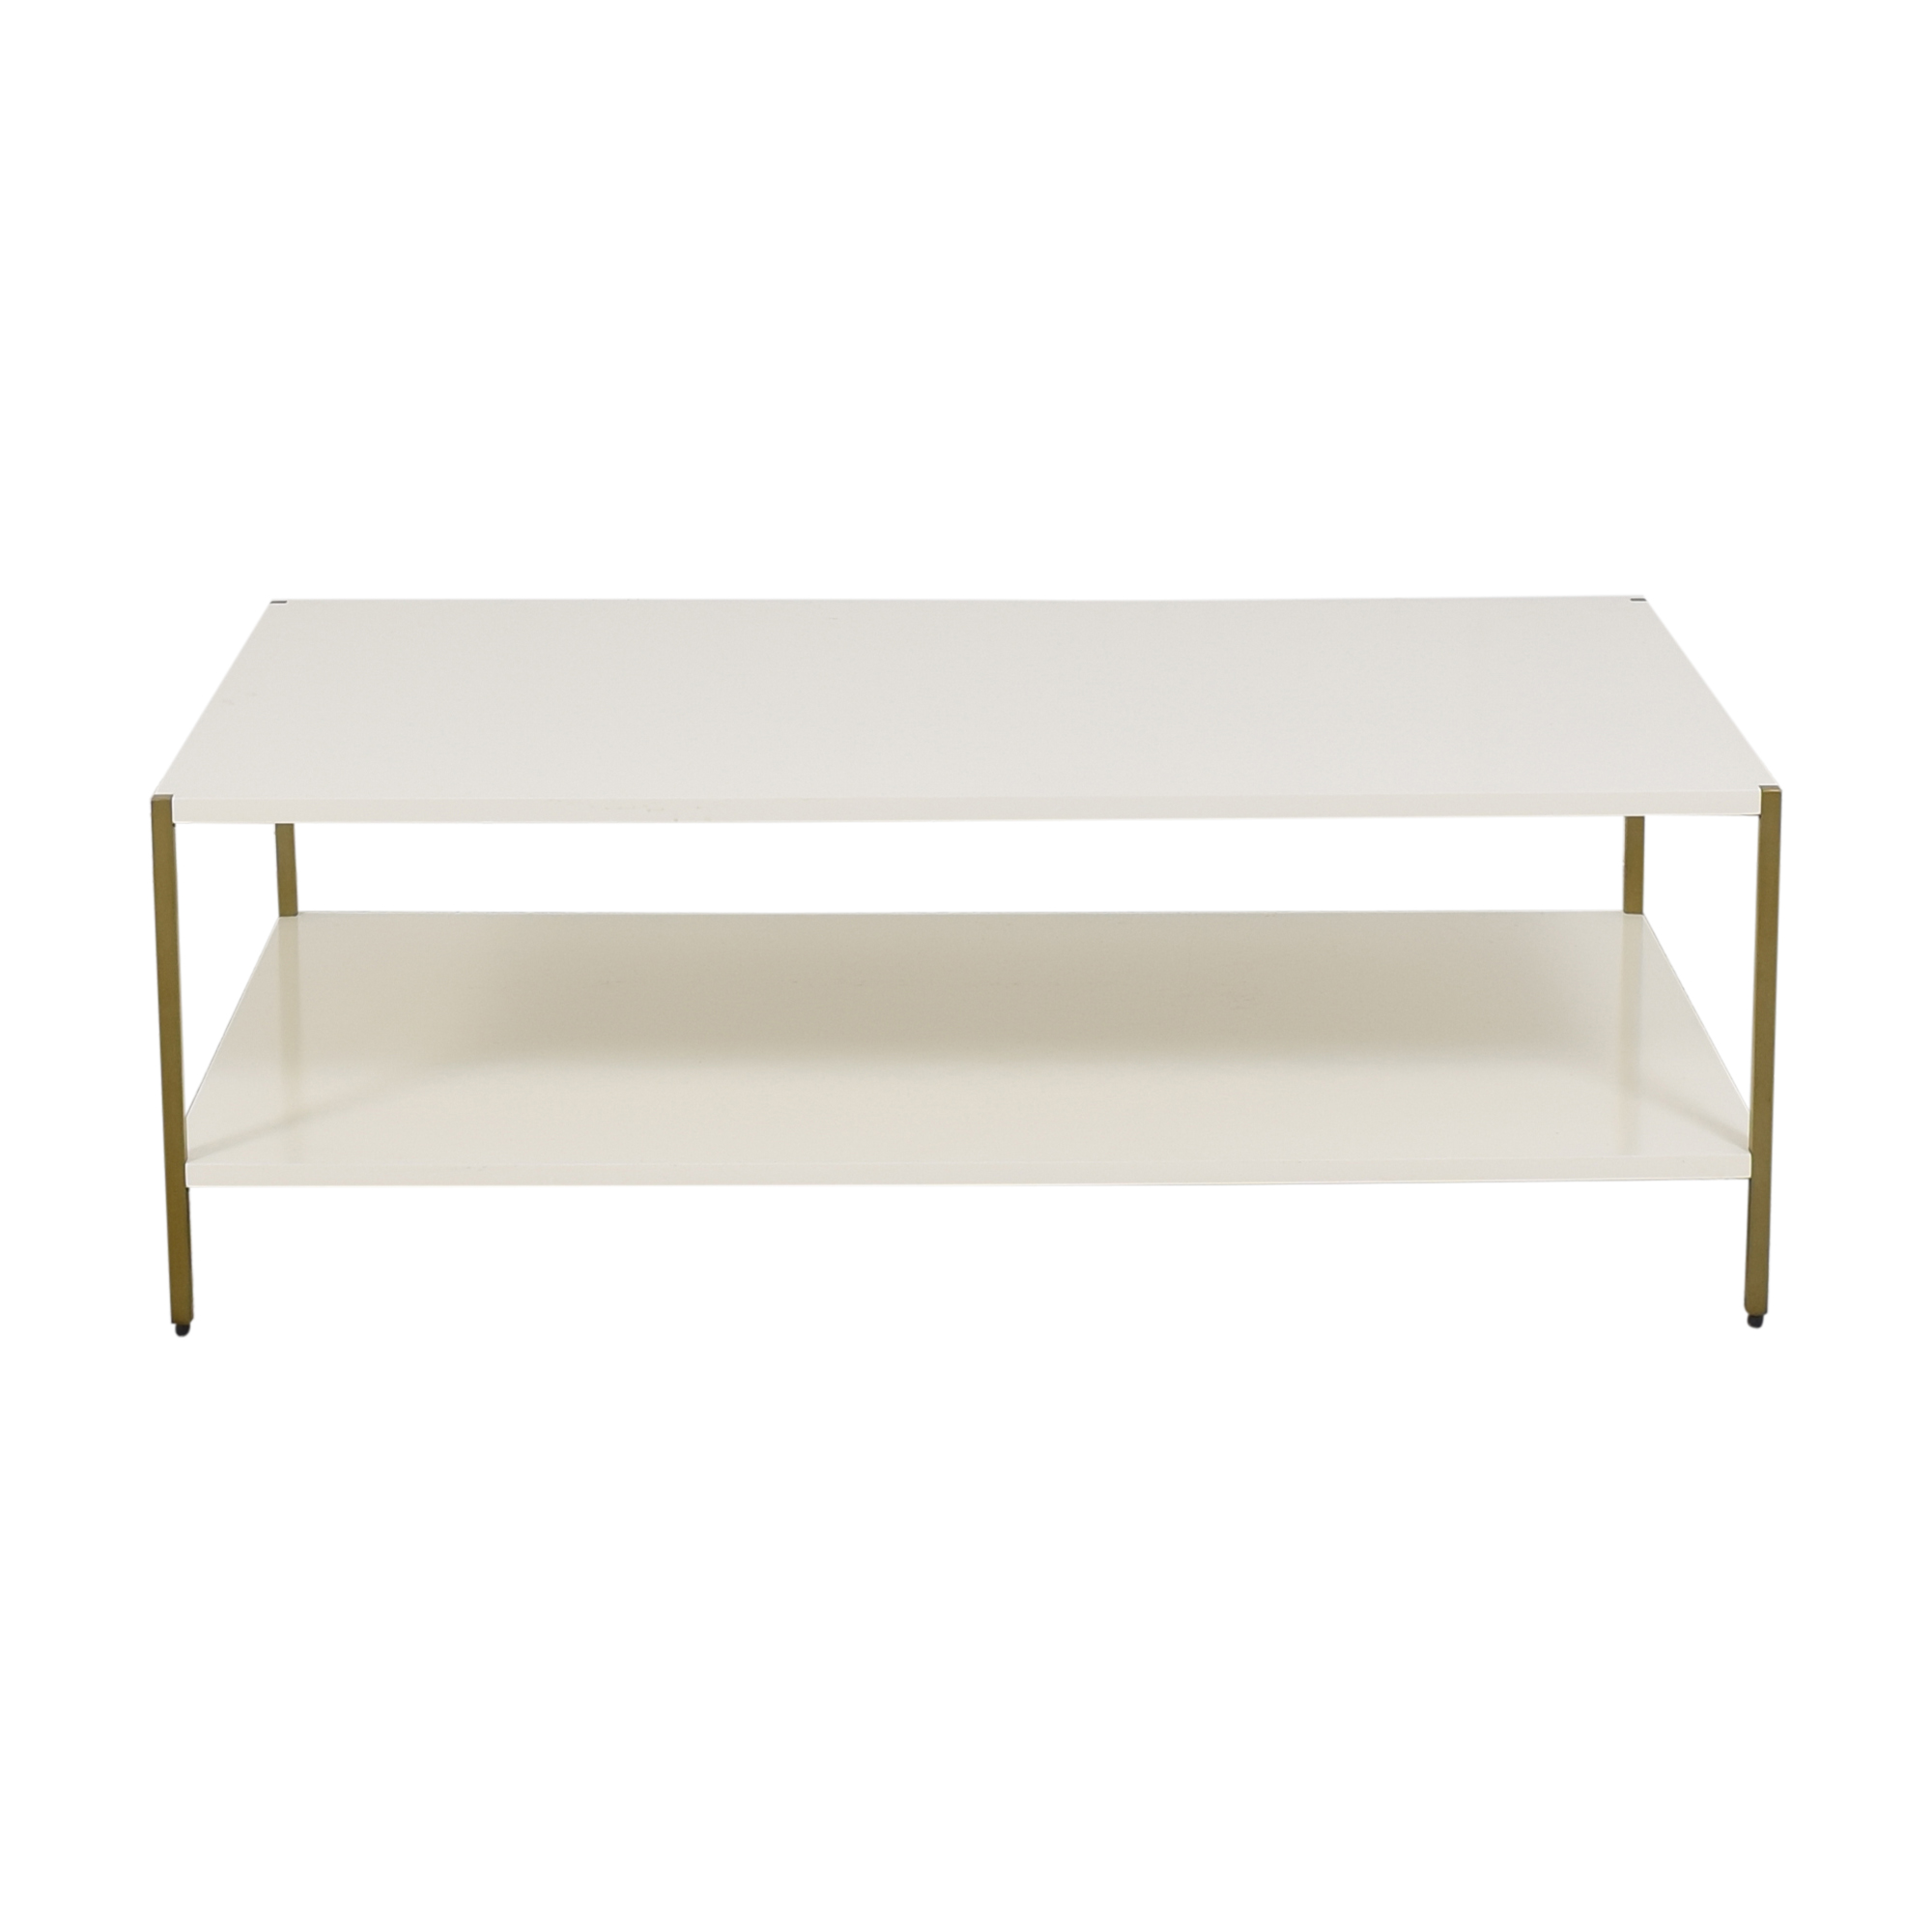 West Elm West Elm Zane Coffee Table coupon